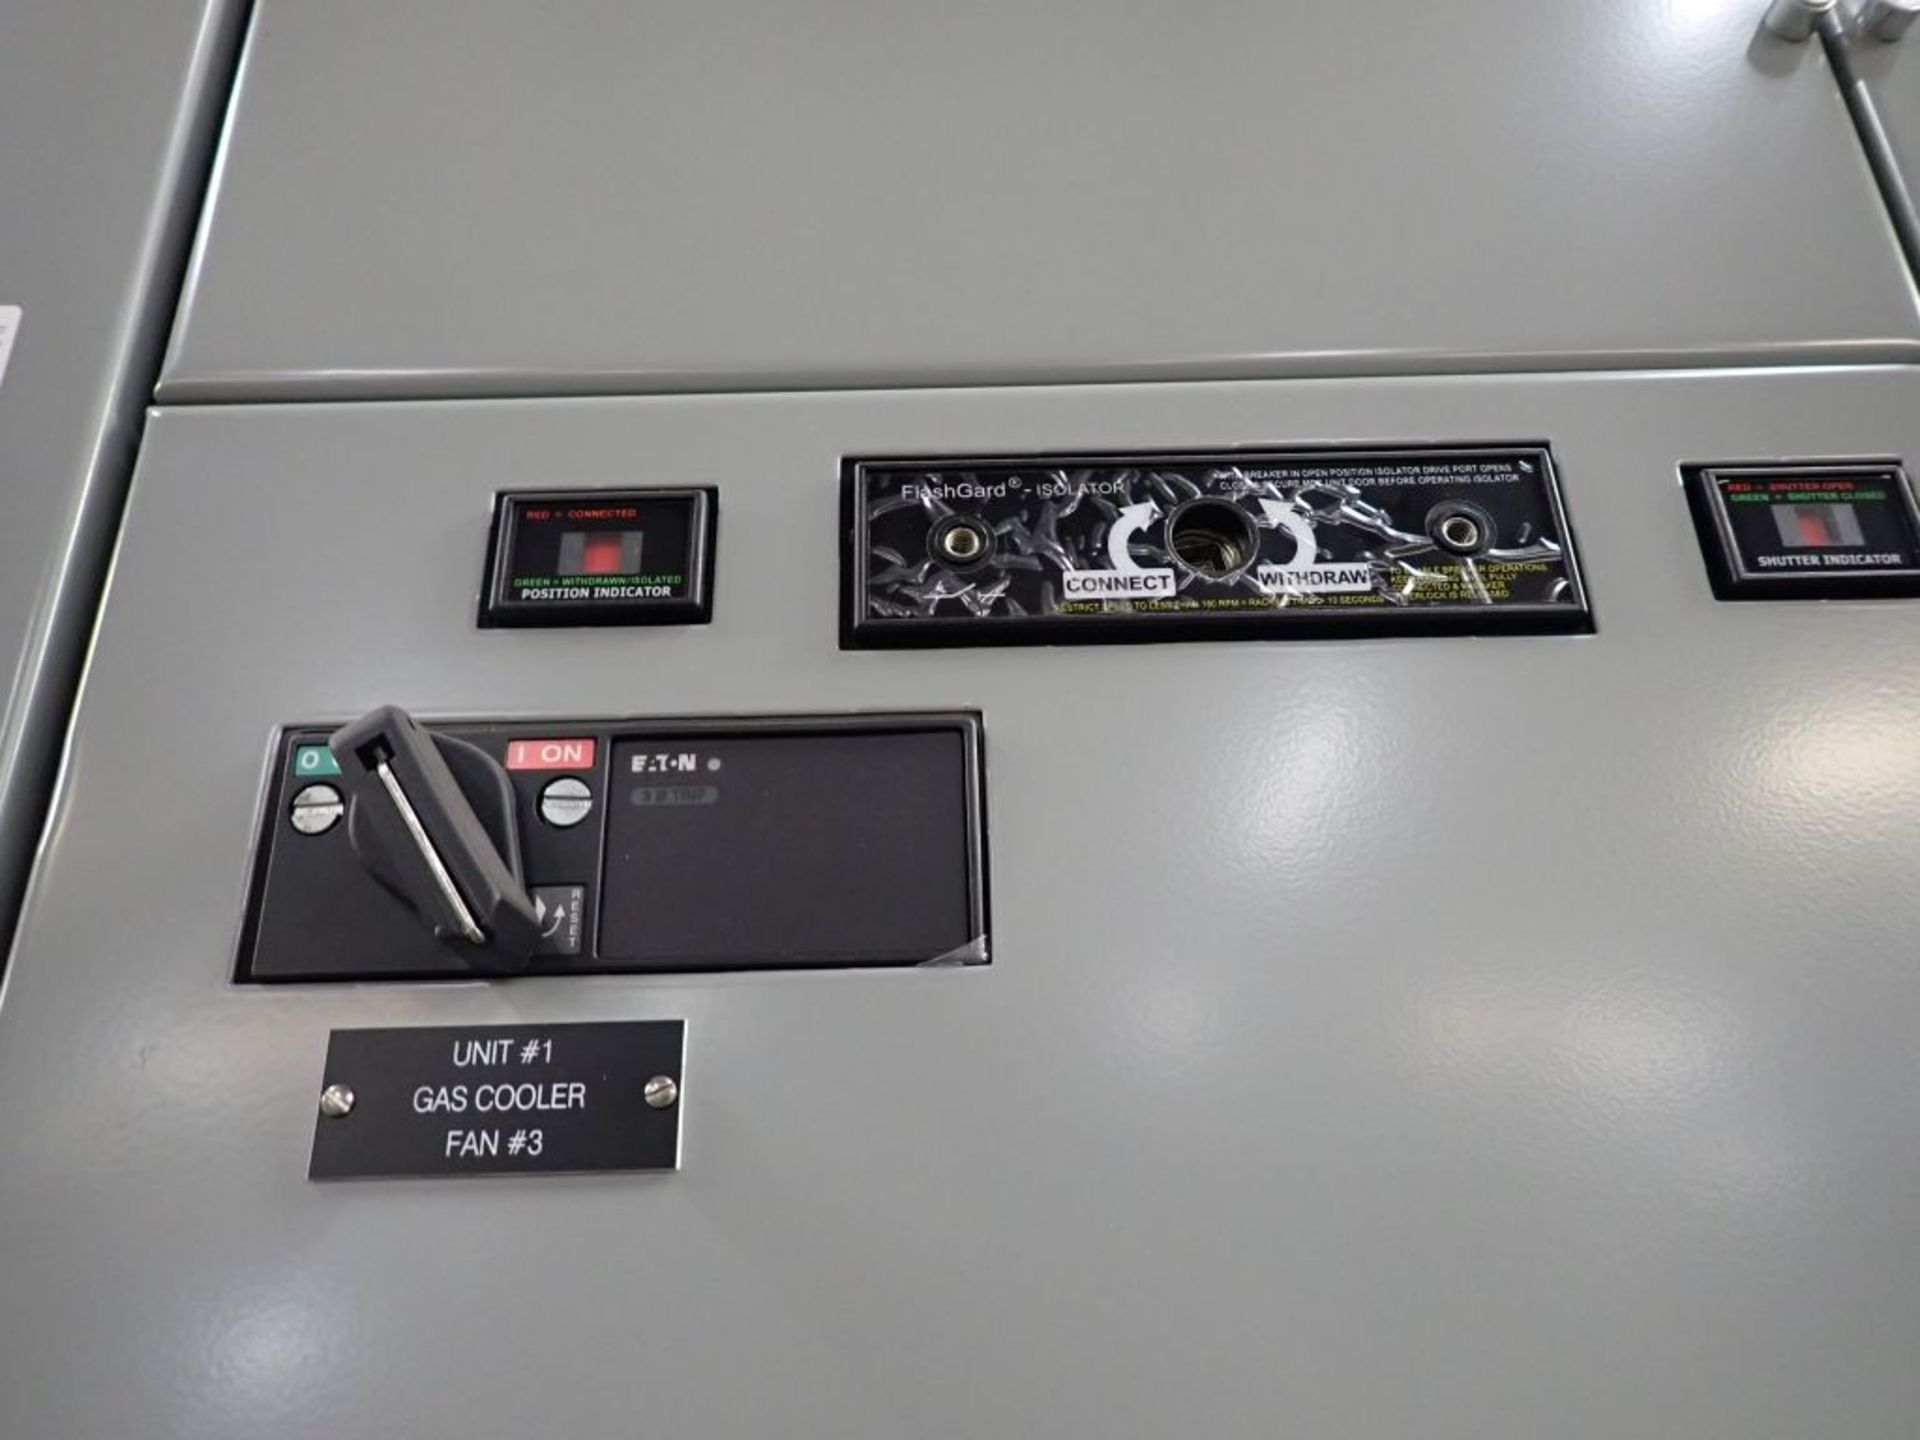 Eaton Freedom 2100 Series Motor Control Center   (4) SVX900-30A, with Eaton AF Drives, SVX9000, - Image 16 of 60